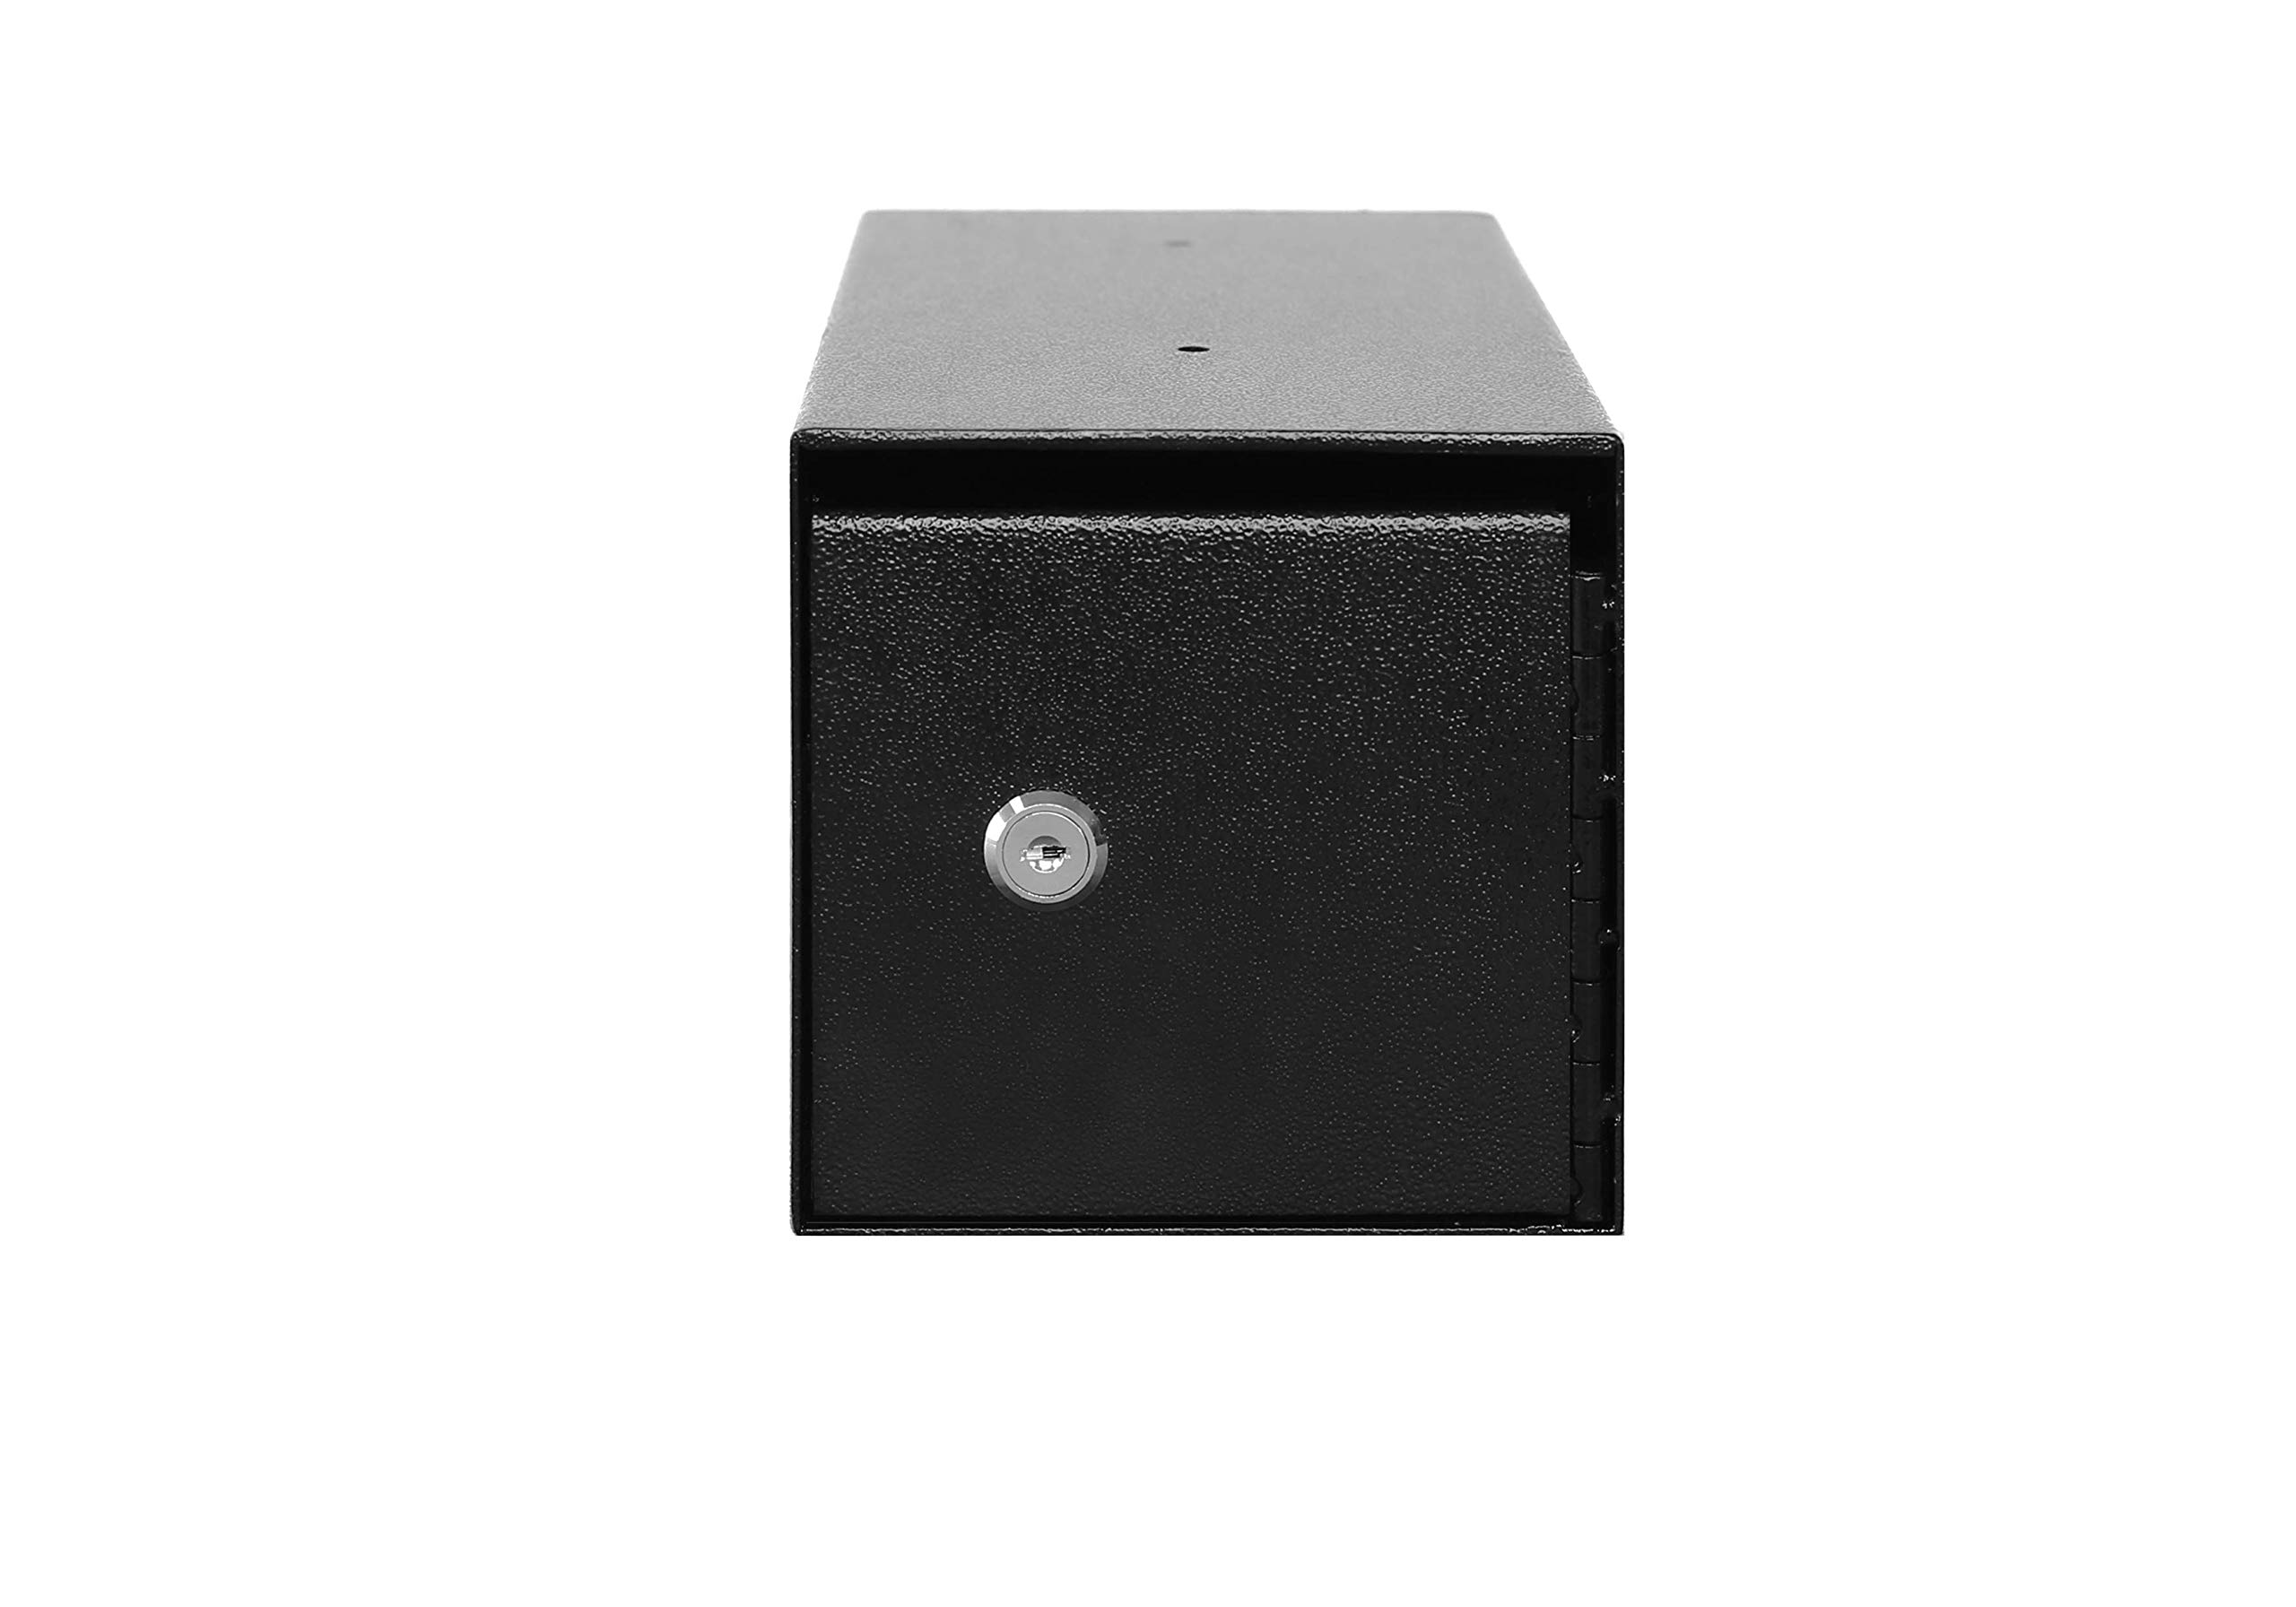 Templeton Small Depository Drop Safe with Key Lock, Anti Fishing Security, Black .23 CBF, Model T90 by Templeton